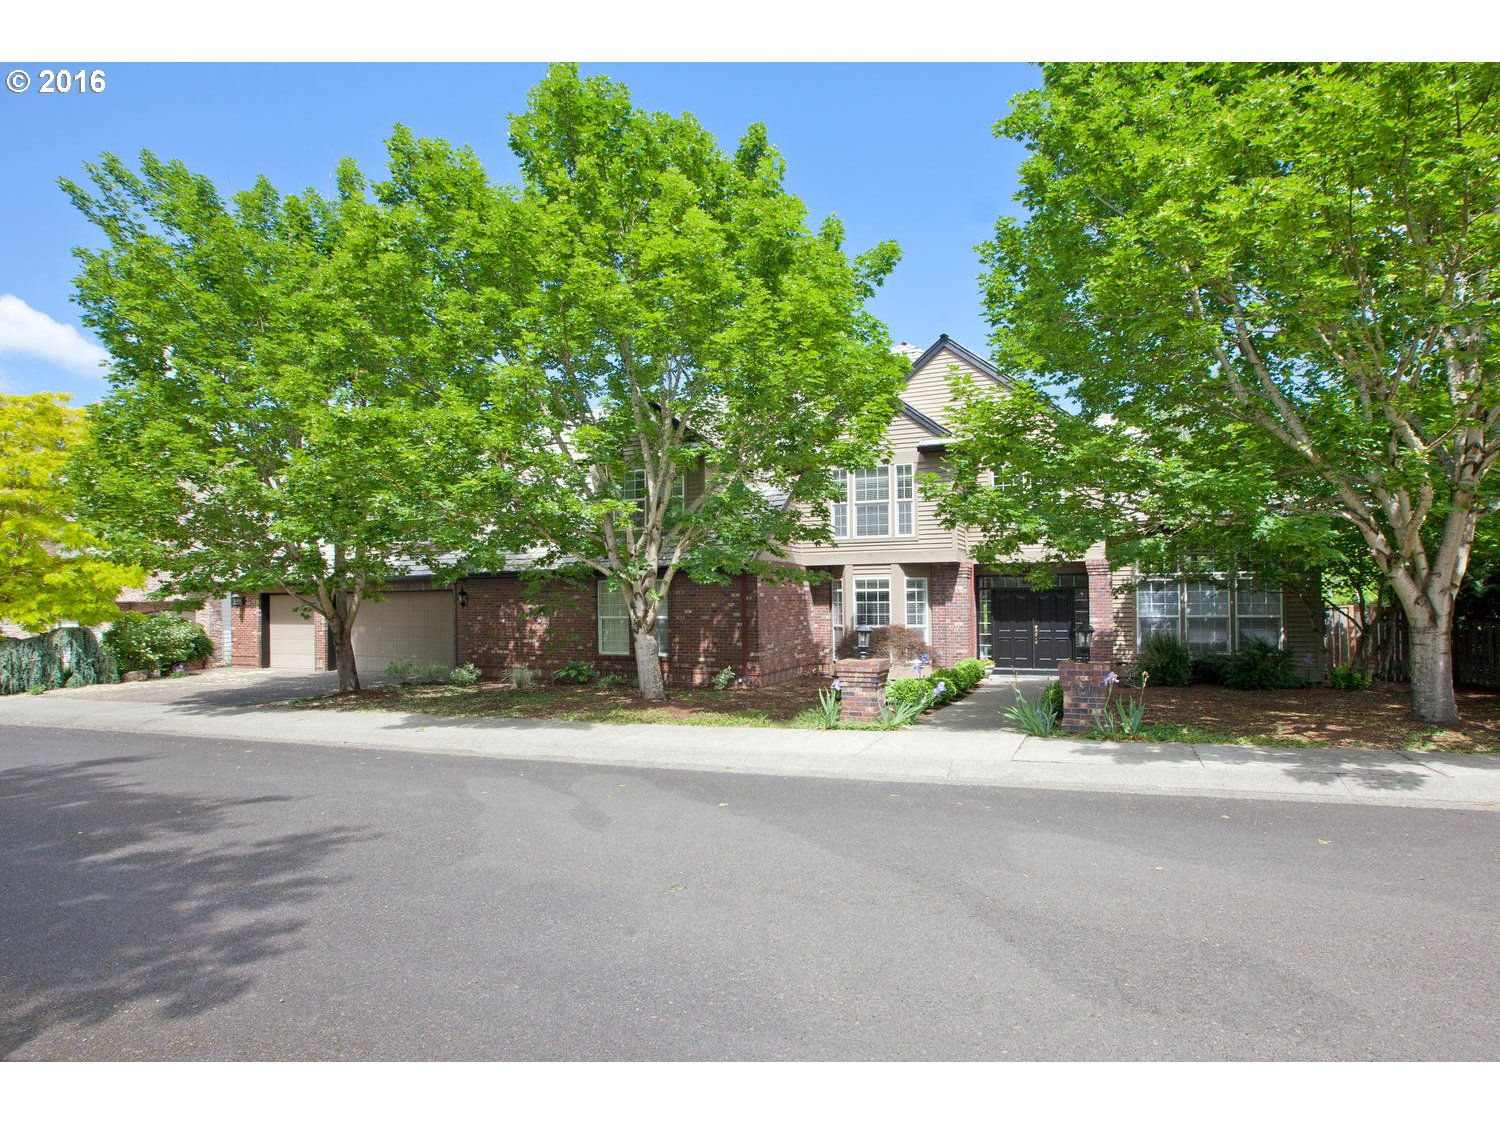 $999,950 - 6Br/5Ba -  for Sale in Bethany Area, Portland